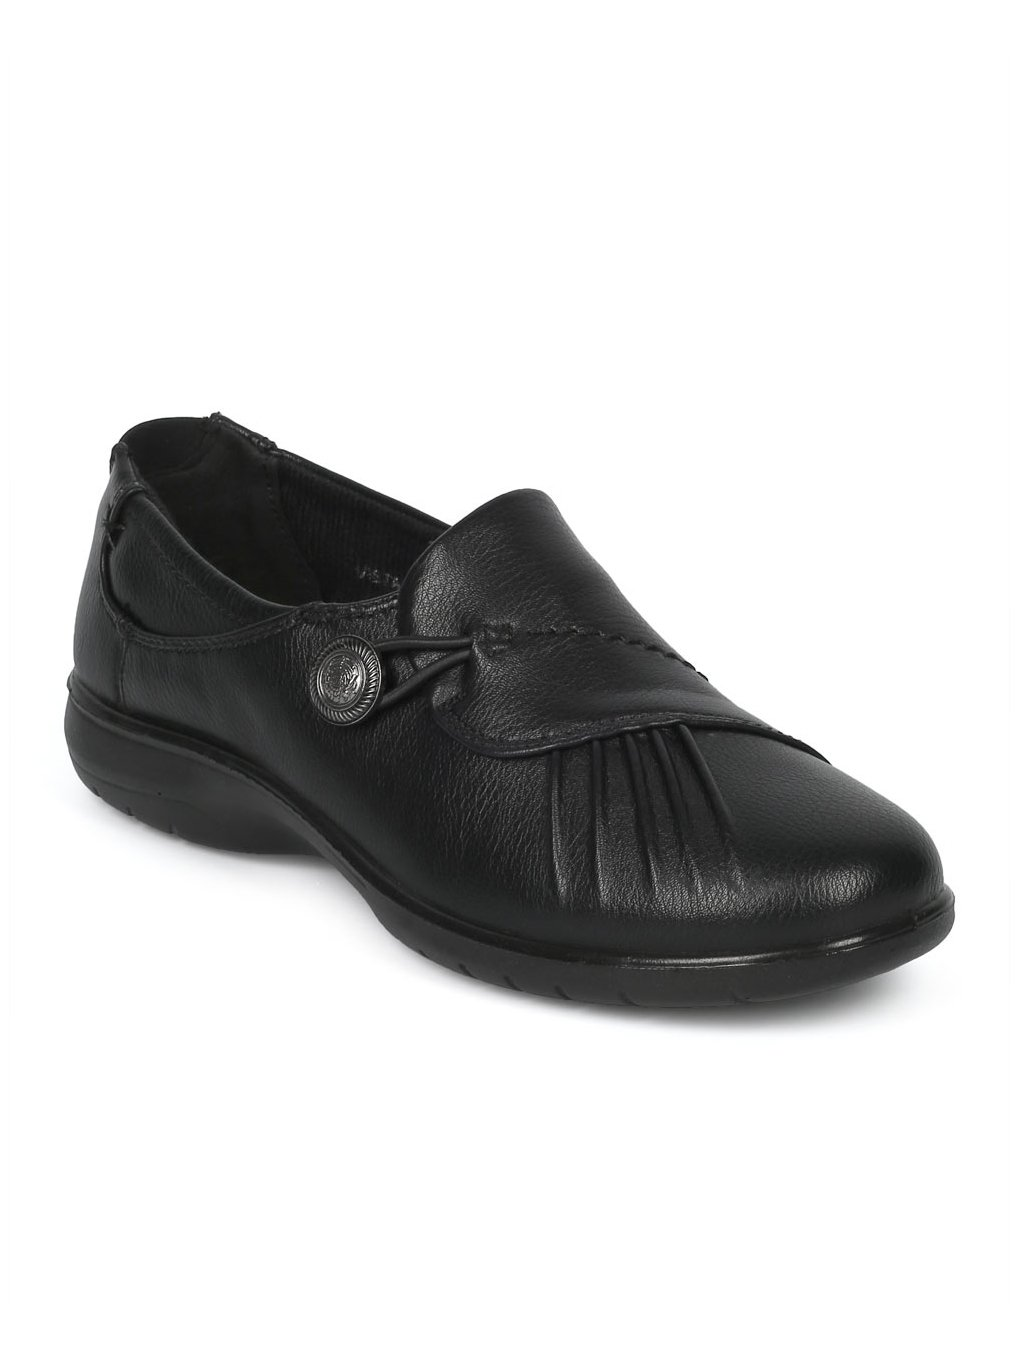 Alrisco Leatherette Pleated Elevated Heel Working Shoe HD93